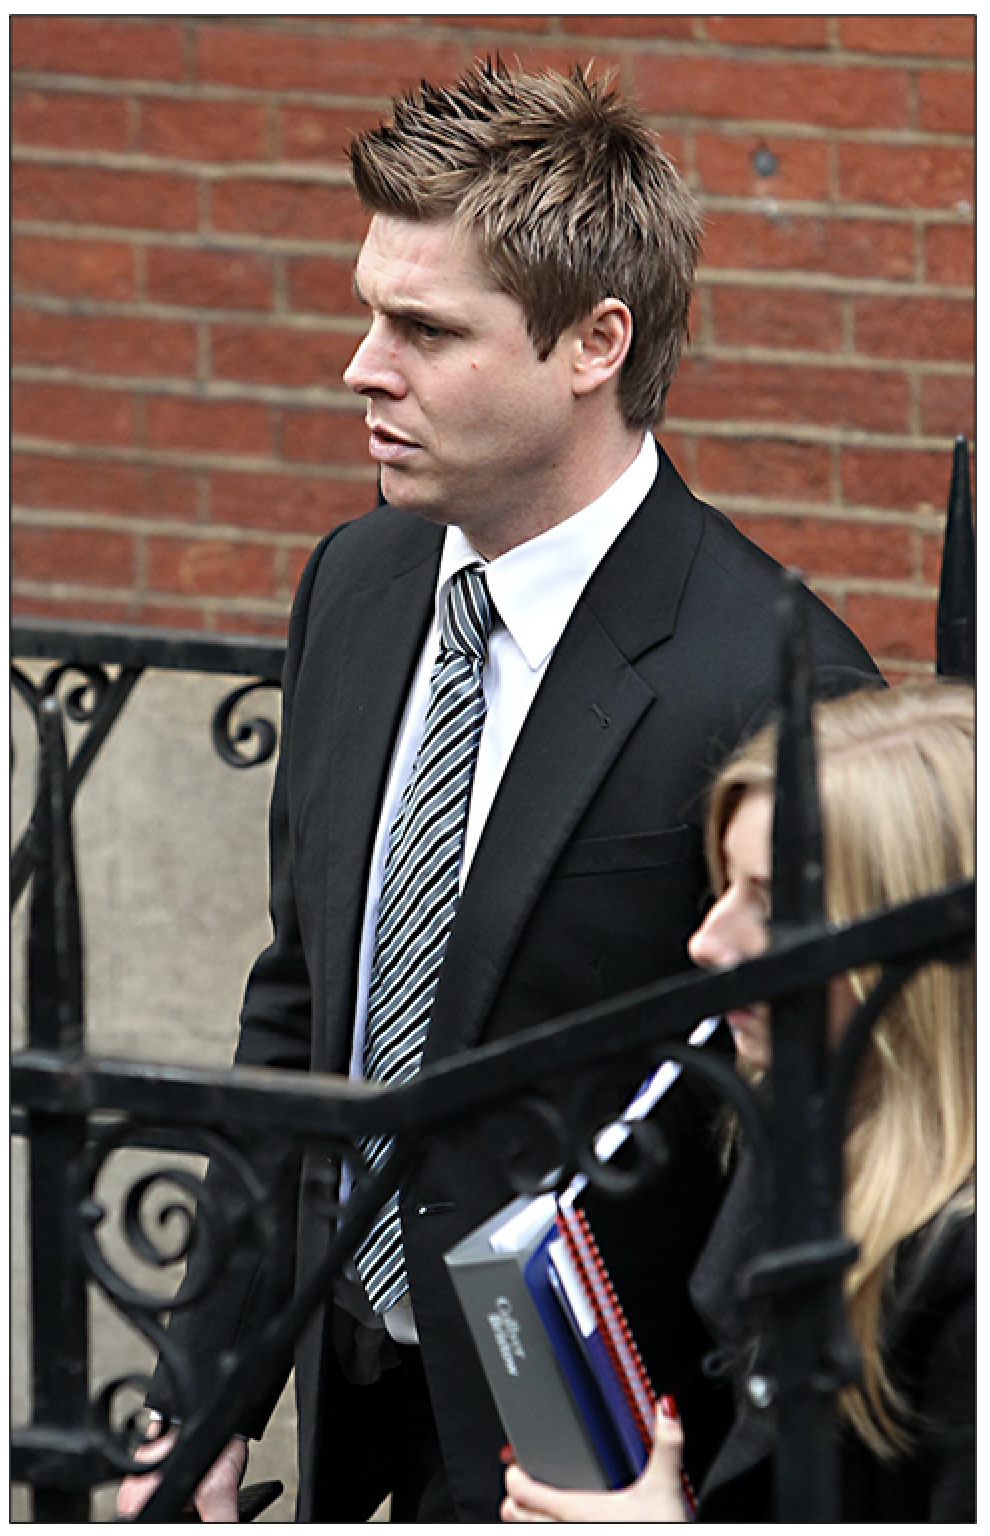 Garry Flitcroft leaves after he gave evidence to the Leveson Inquiry at The Royal Courts of Justice, The Strand, London, on 22 November 2011